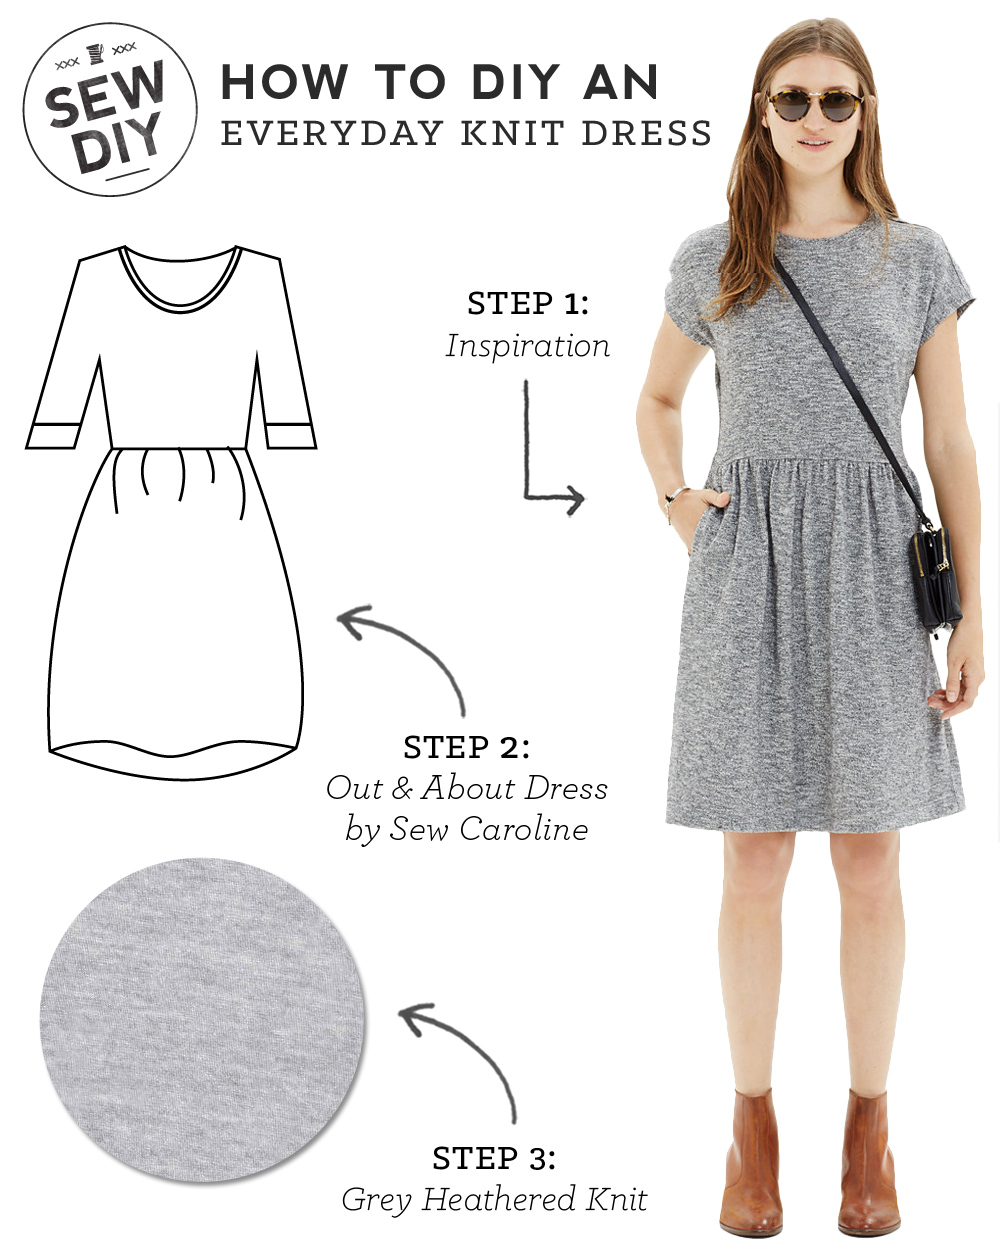 Diy outfit everyday knit dress — sew